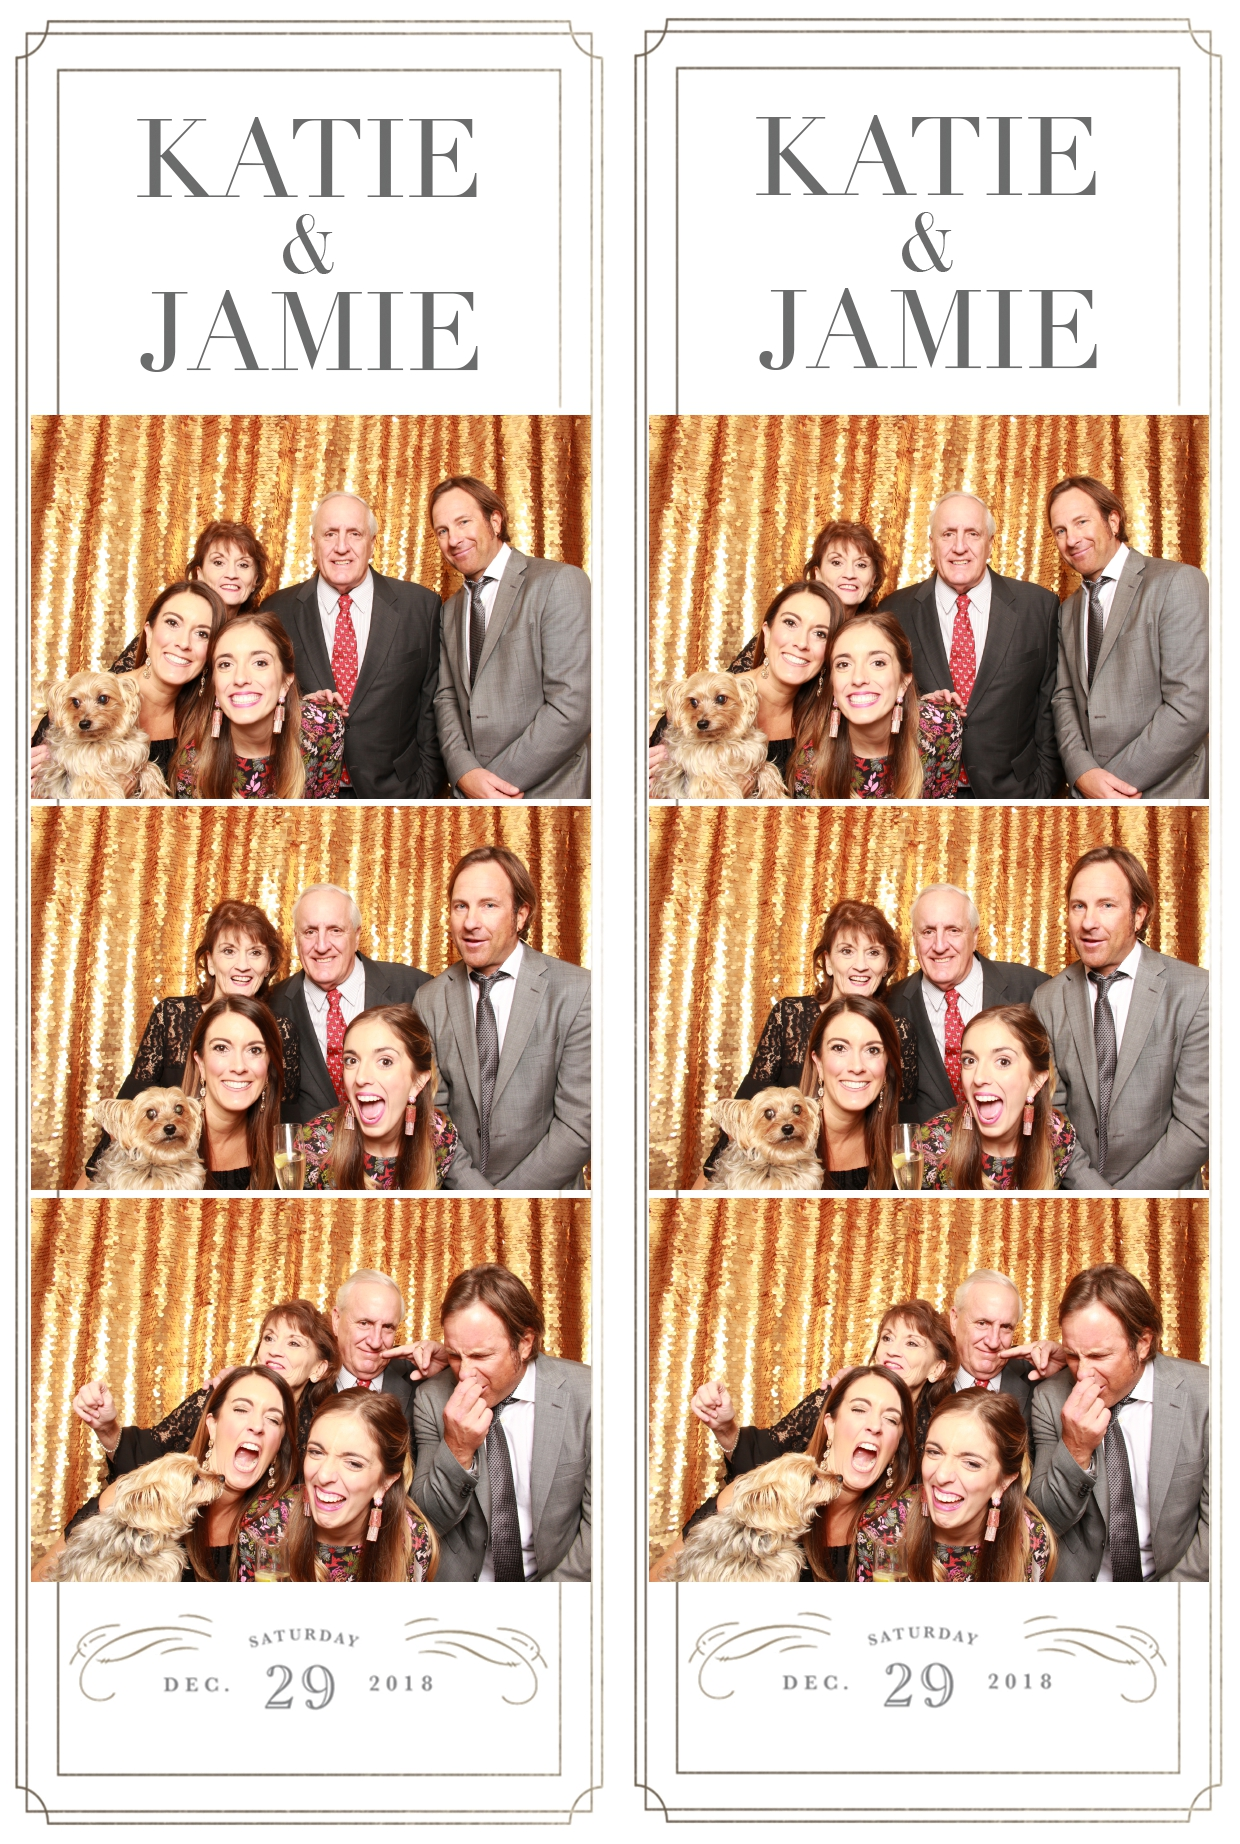 Oh Happy Day Booth - Katie and Jamie Customized18.jpg